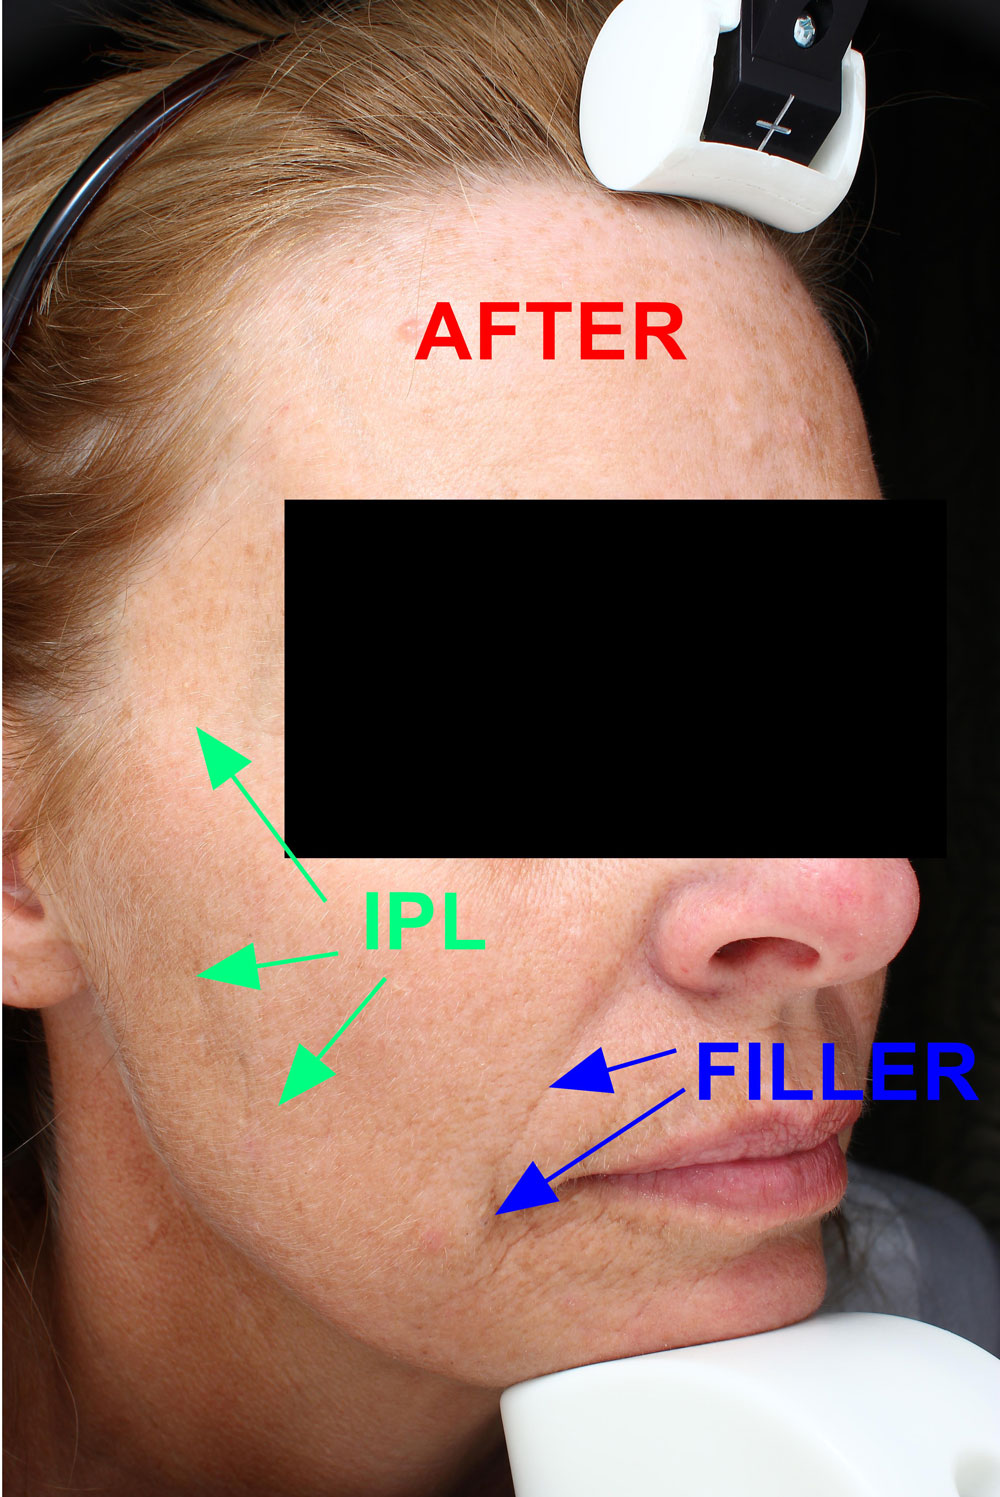 Face after from IPL and facial filler treatments before and after procedure provided by Dr. Scott Hernberg of Tomorrow's Wellness Center, NJ's premier med spa.